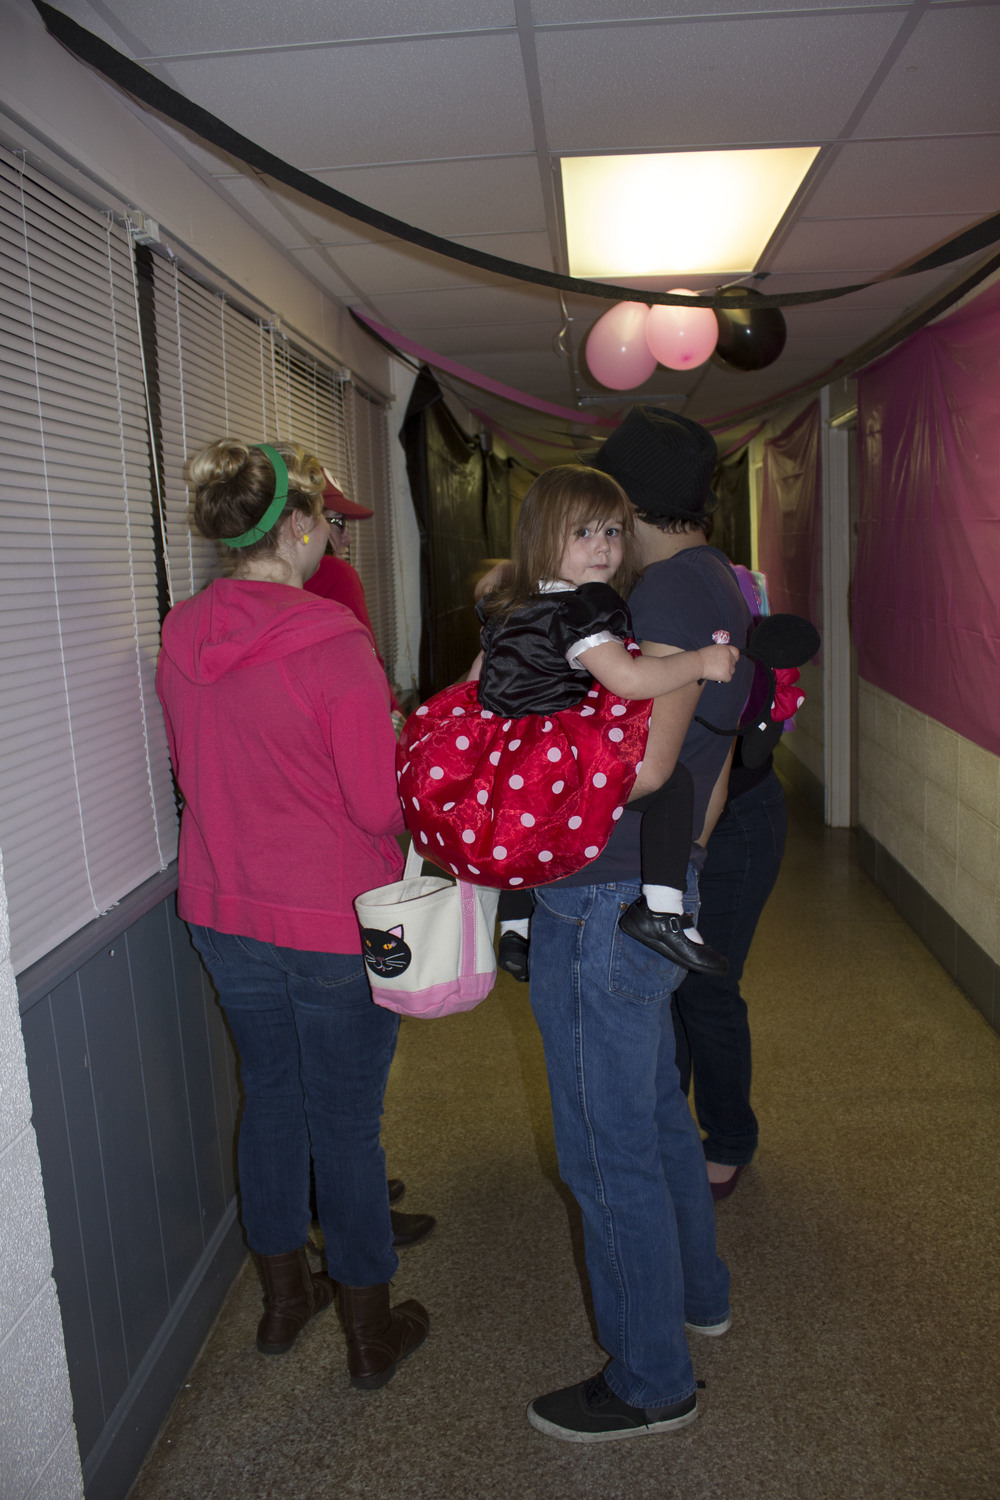 Families enjoyed the laid back, fun atmosphere the open dorms allowed for their kids during Halloween.